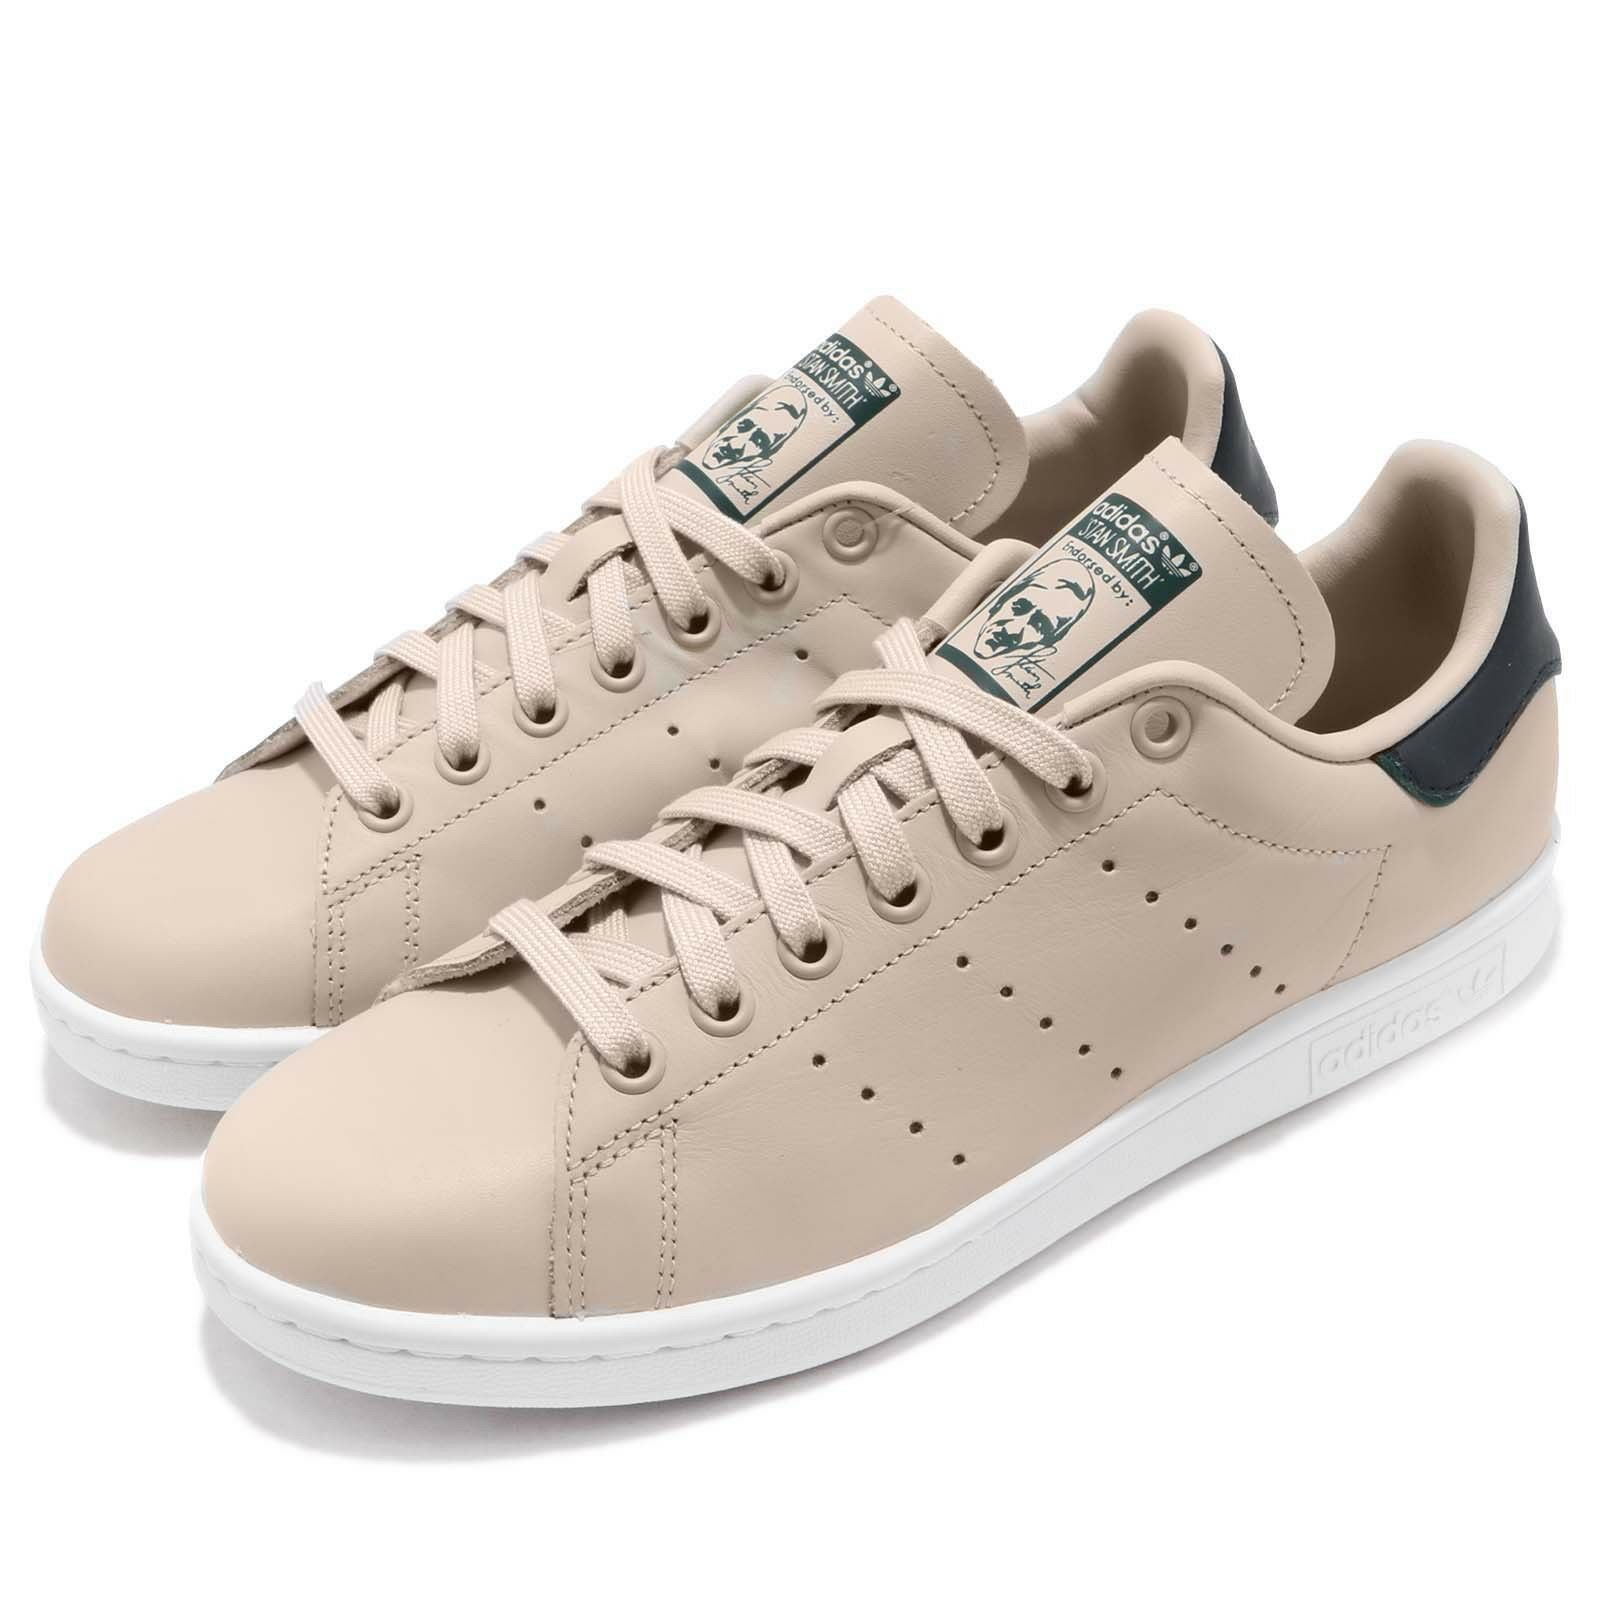 Adidas Originals Stan Smith Brown Green Men Women Casual shoes Sneakers B37910